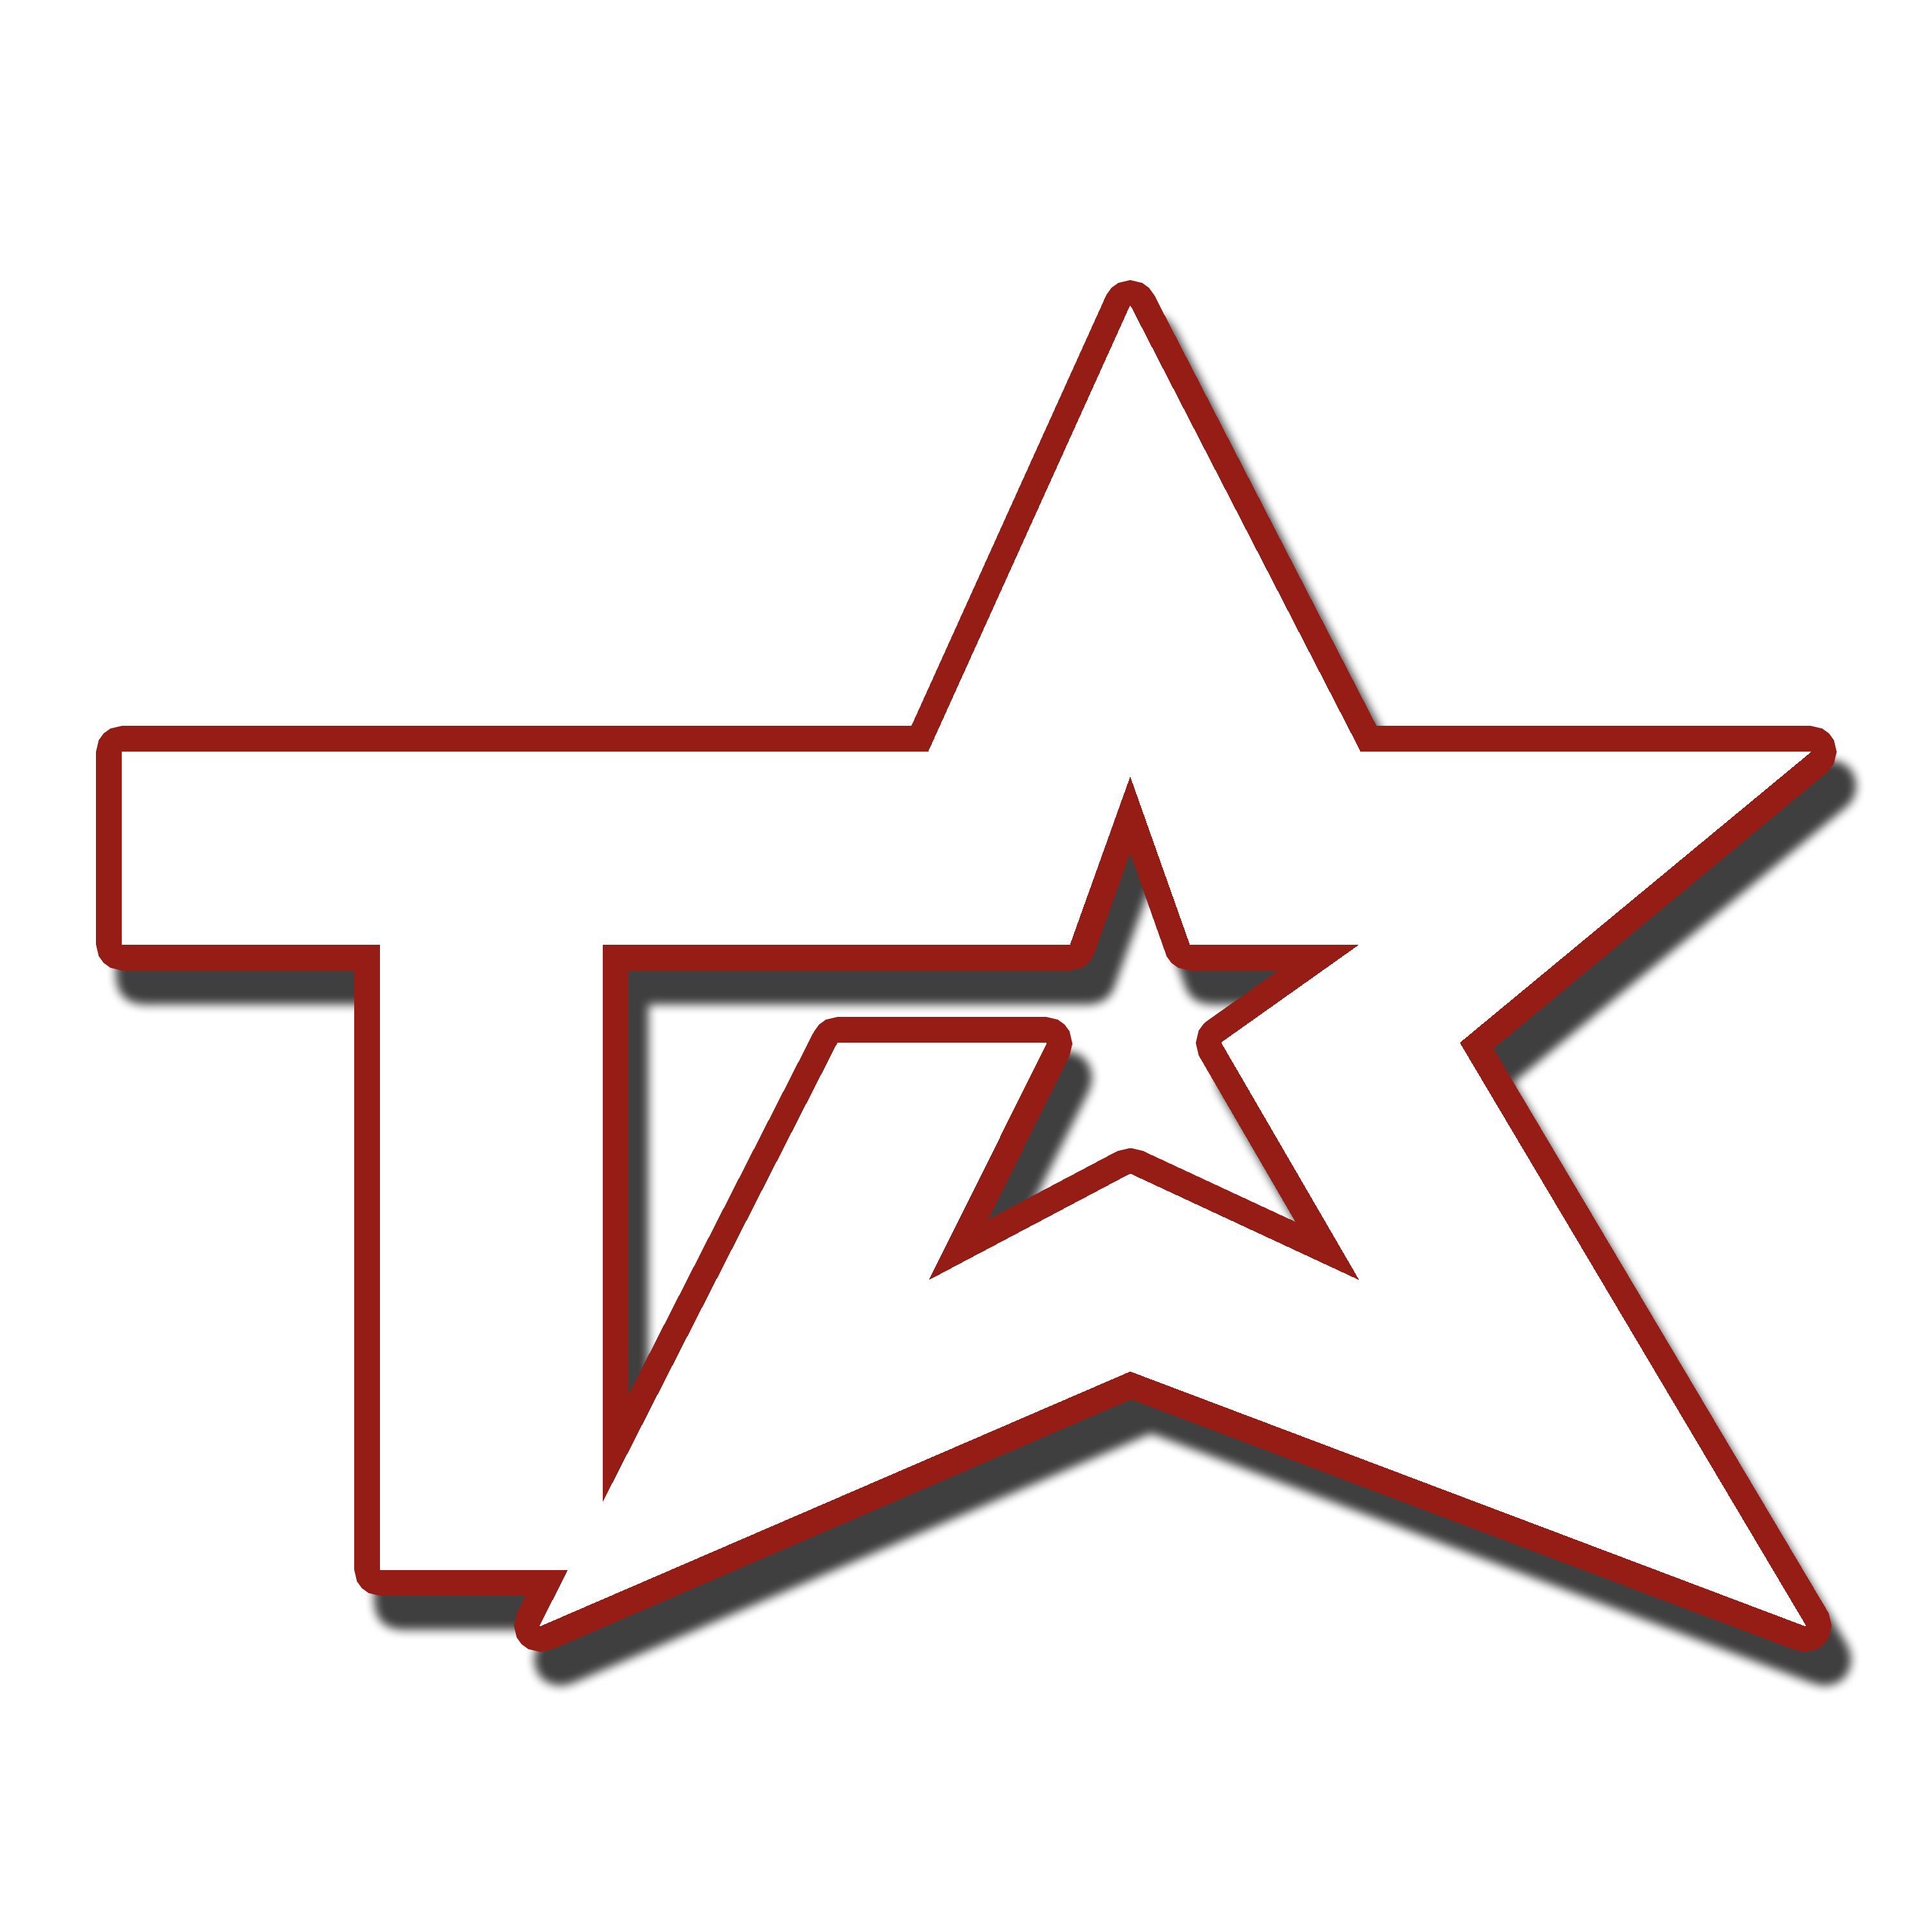 TRAPSTAR Music Video Promotion